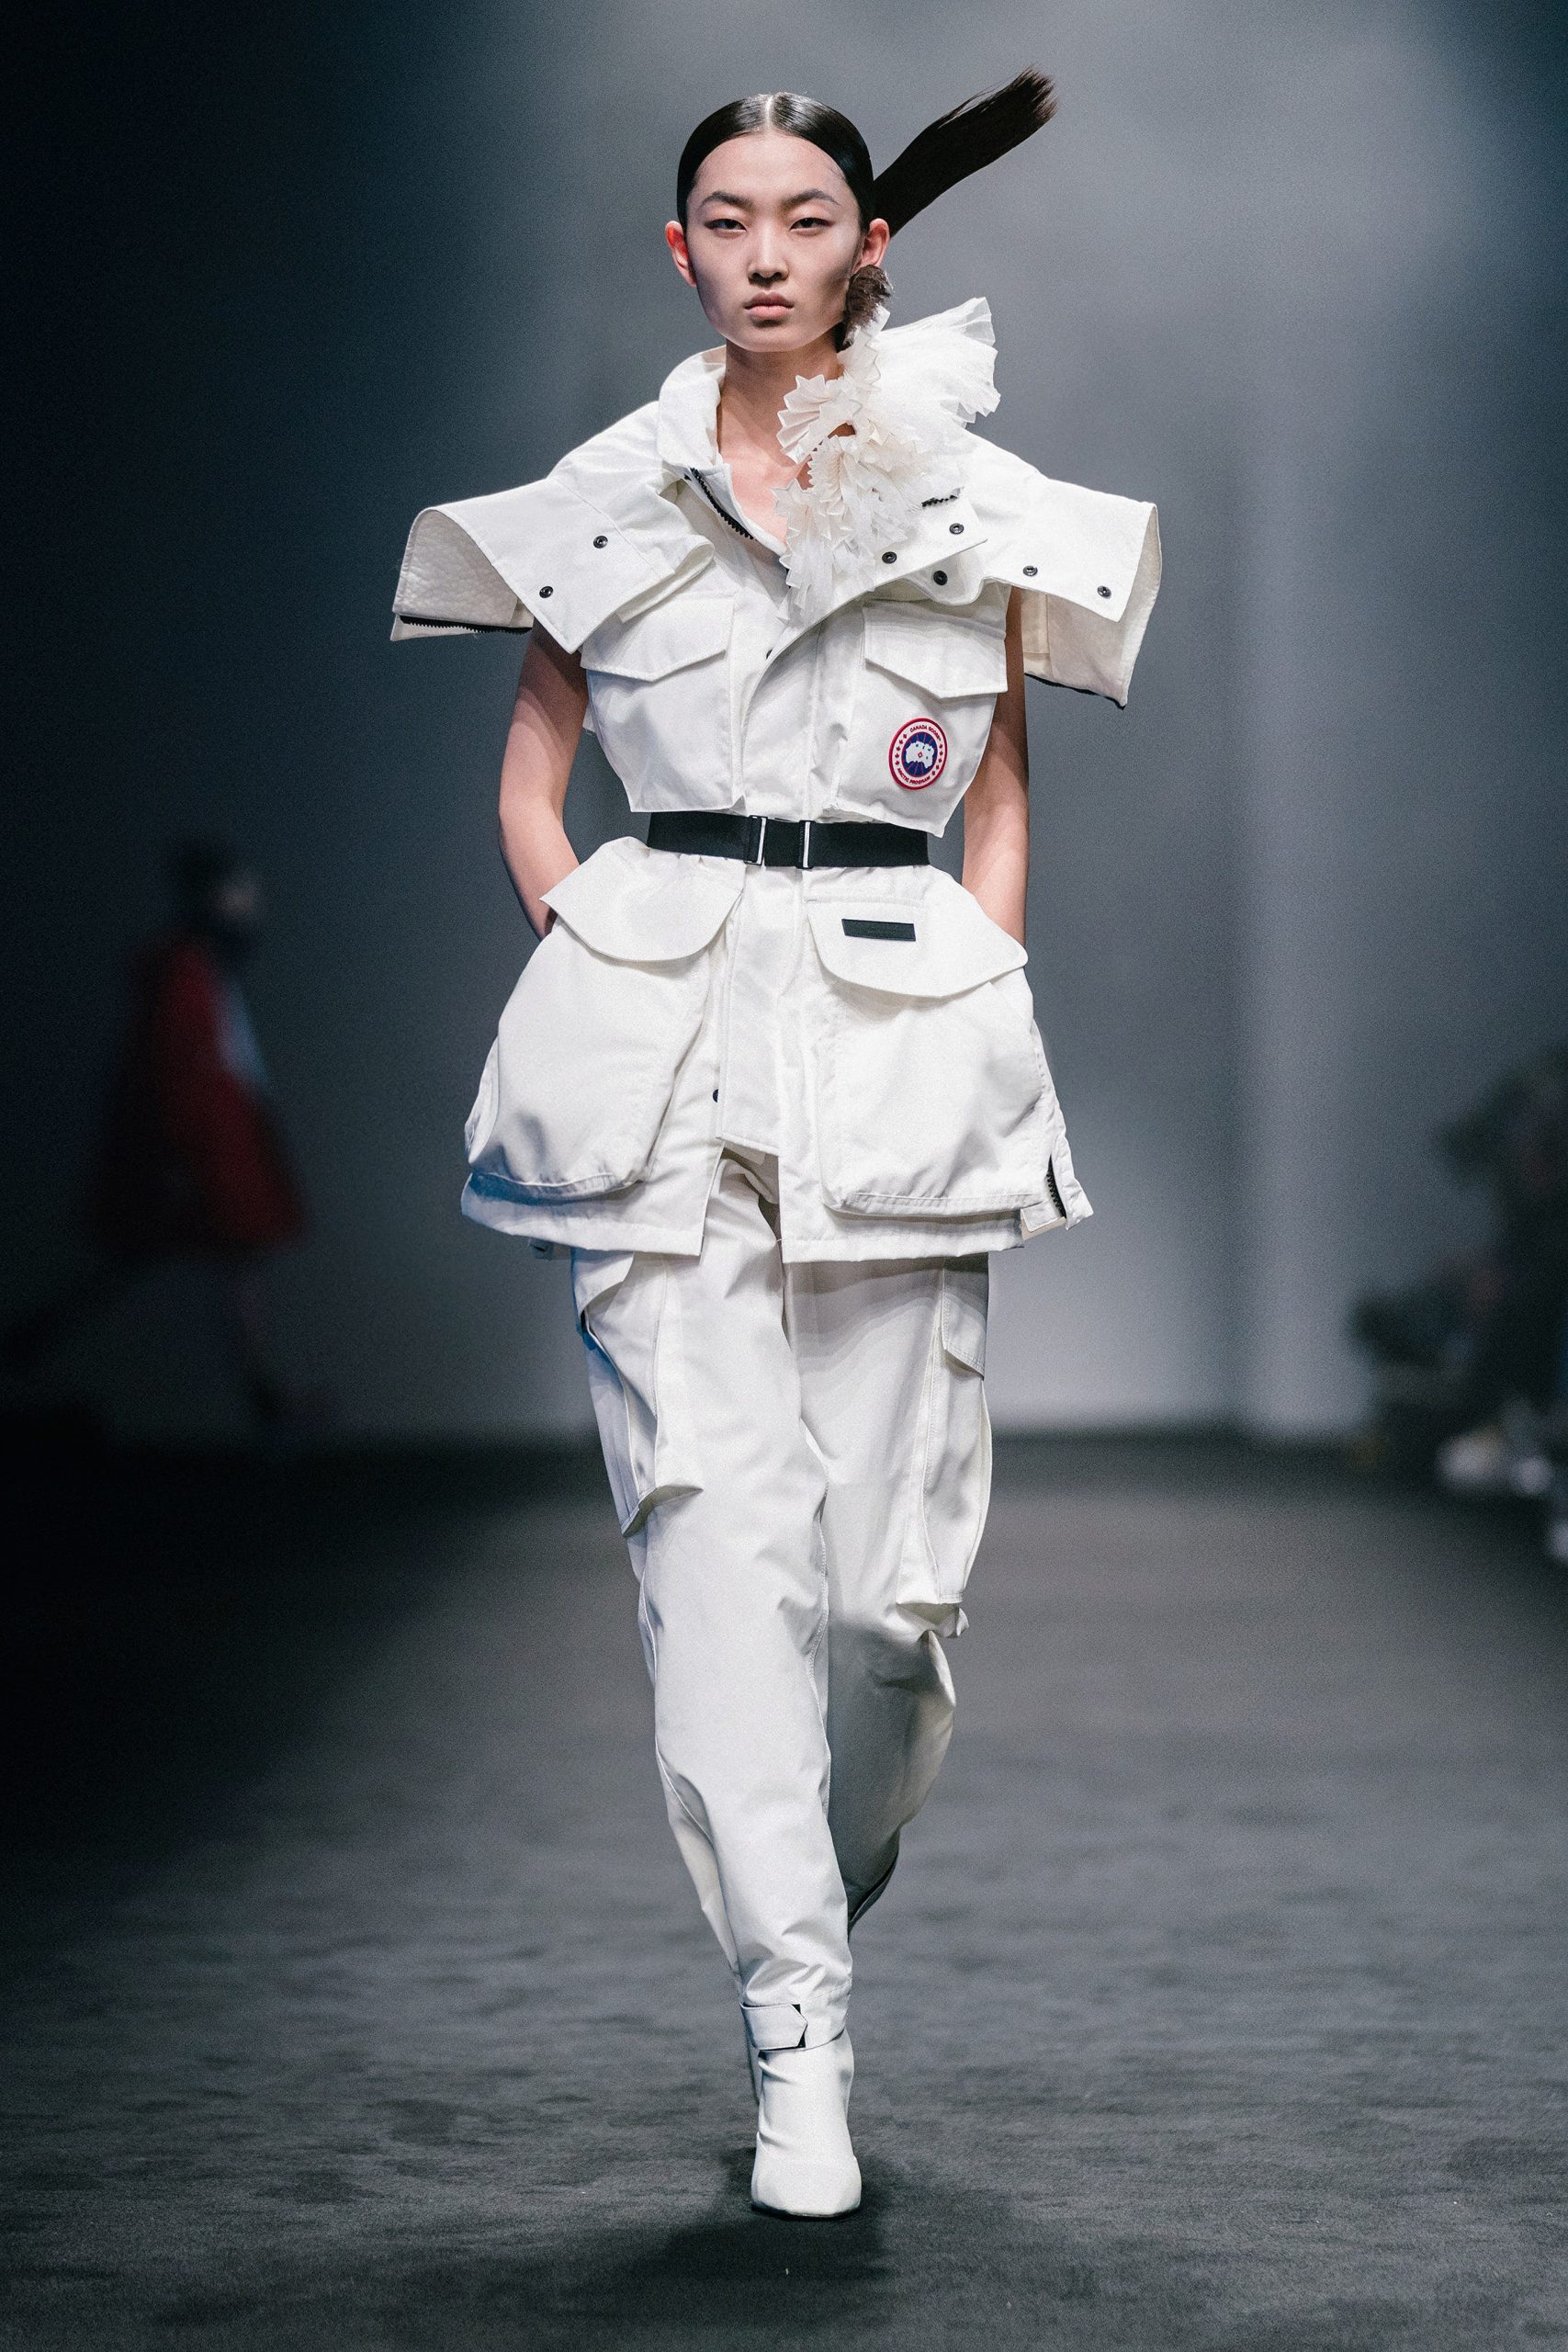 Top 10 Breakout Fashion Designers of 2020